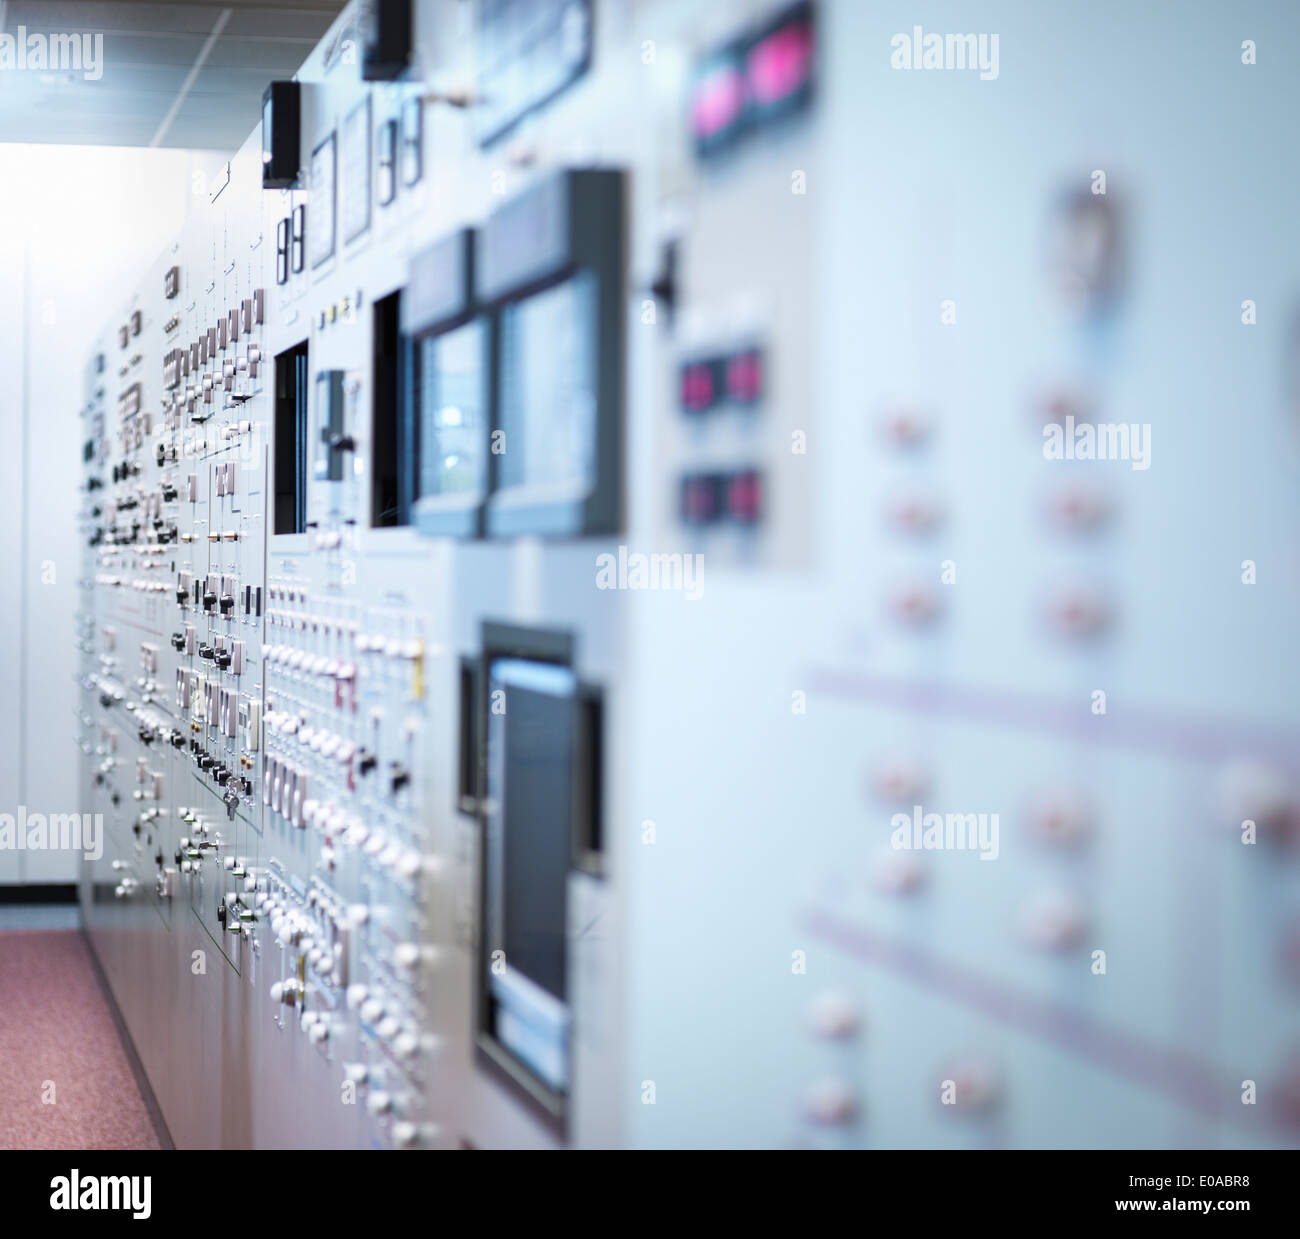 Detail of nuclear power station control room simulator, close up - Stock Image